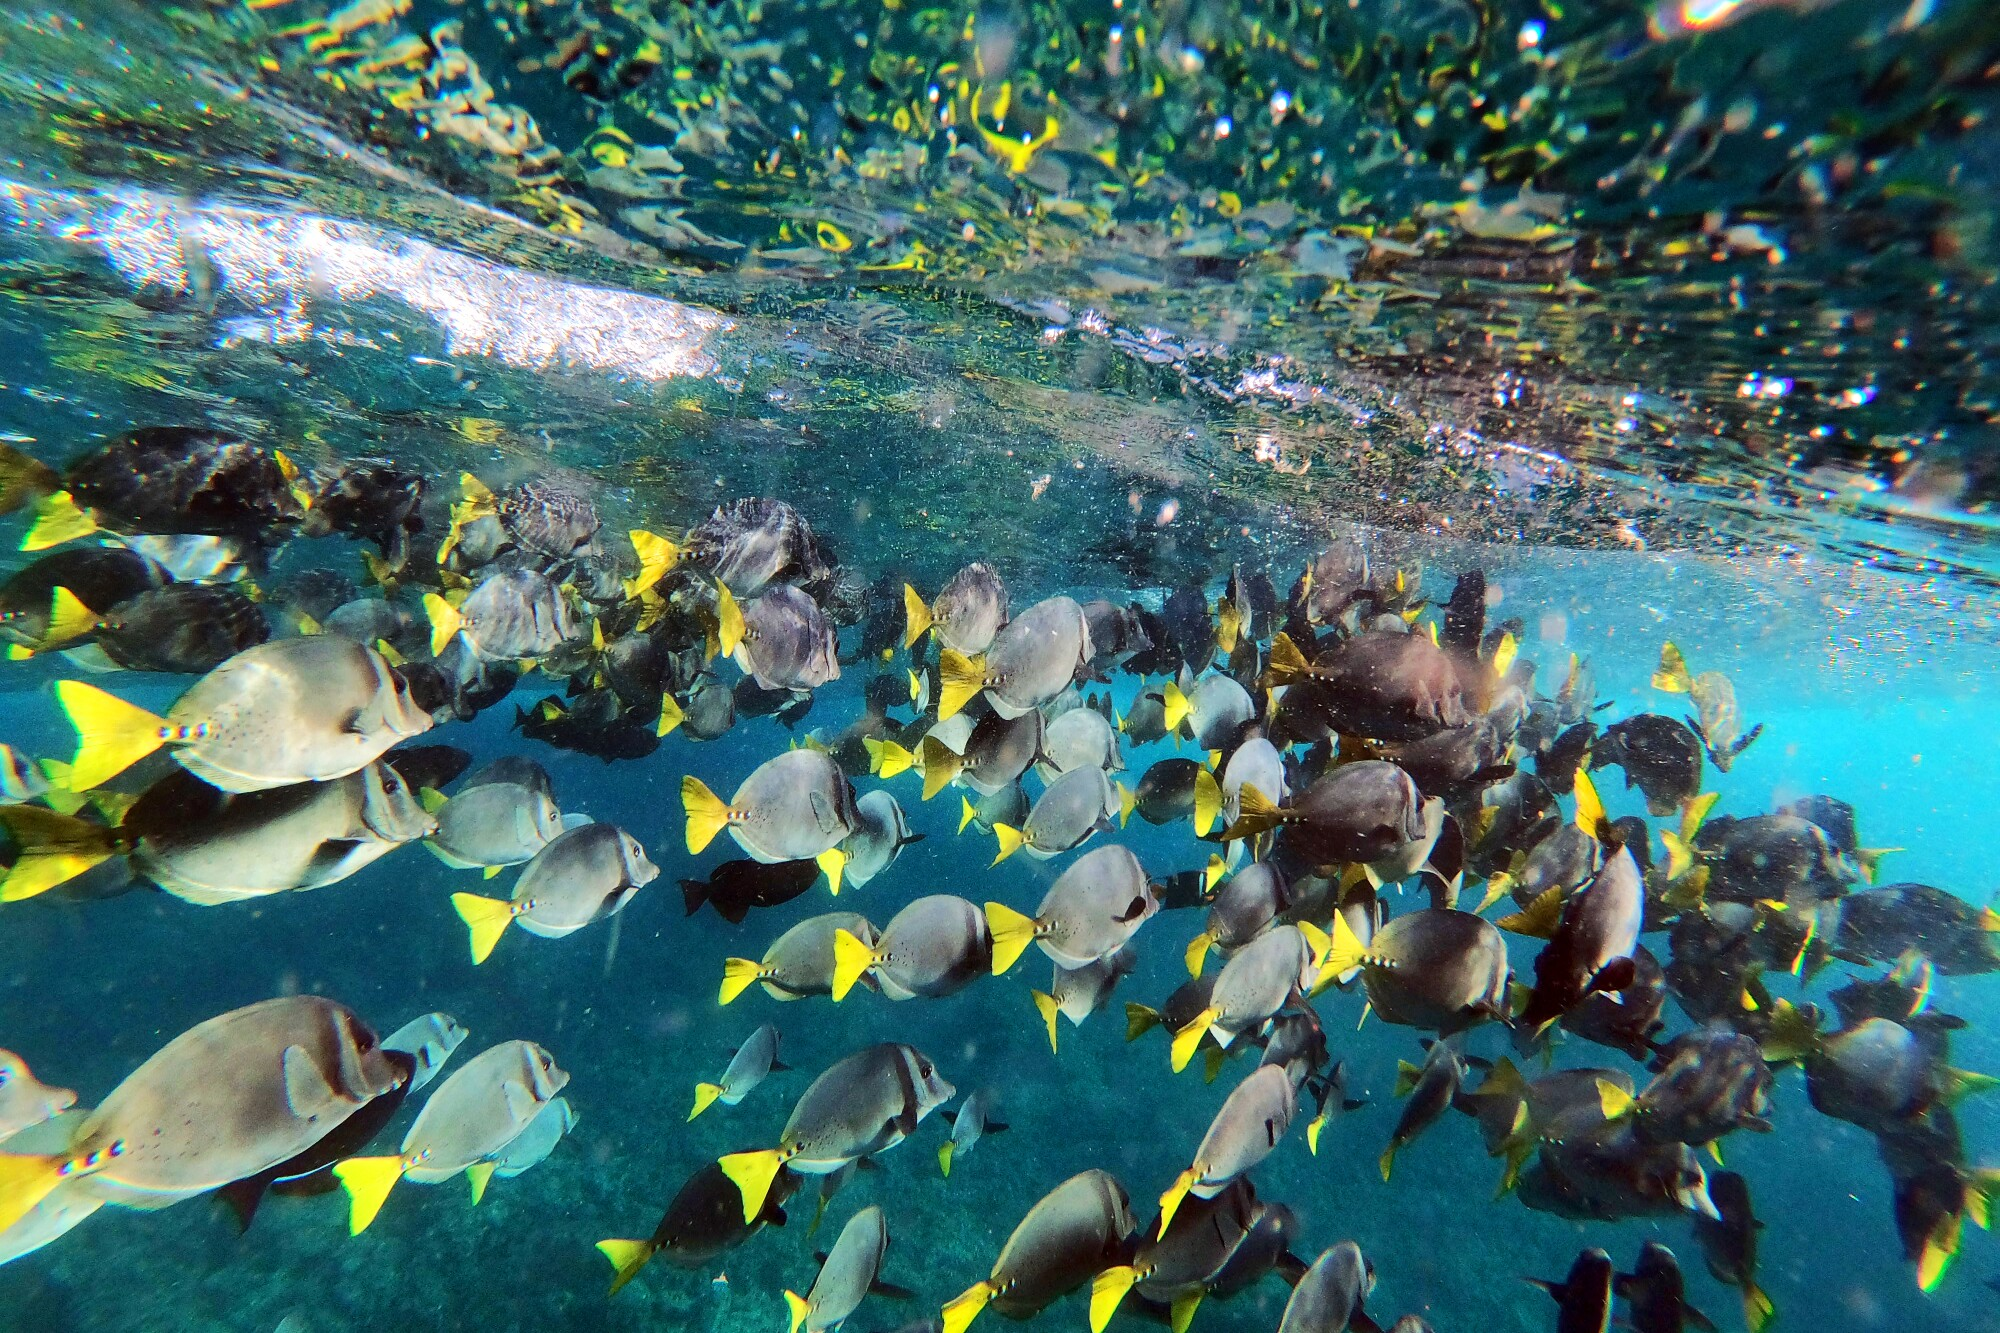 Fish swim in a large school in clear blue water